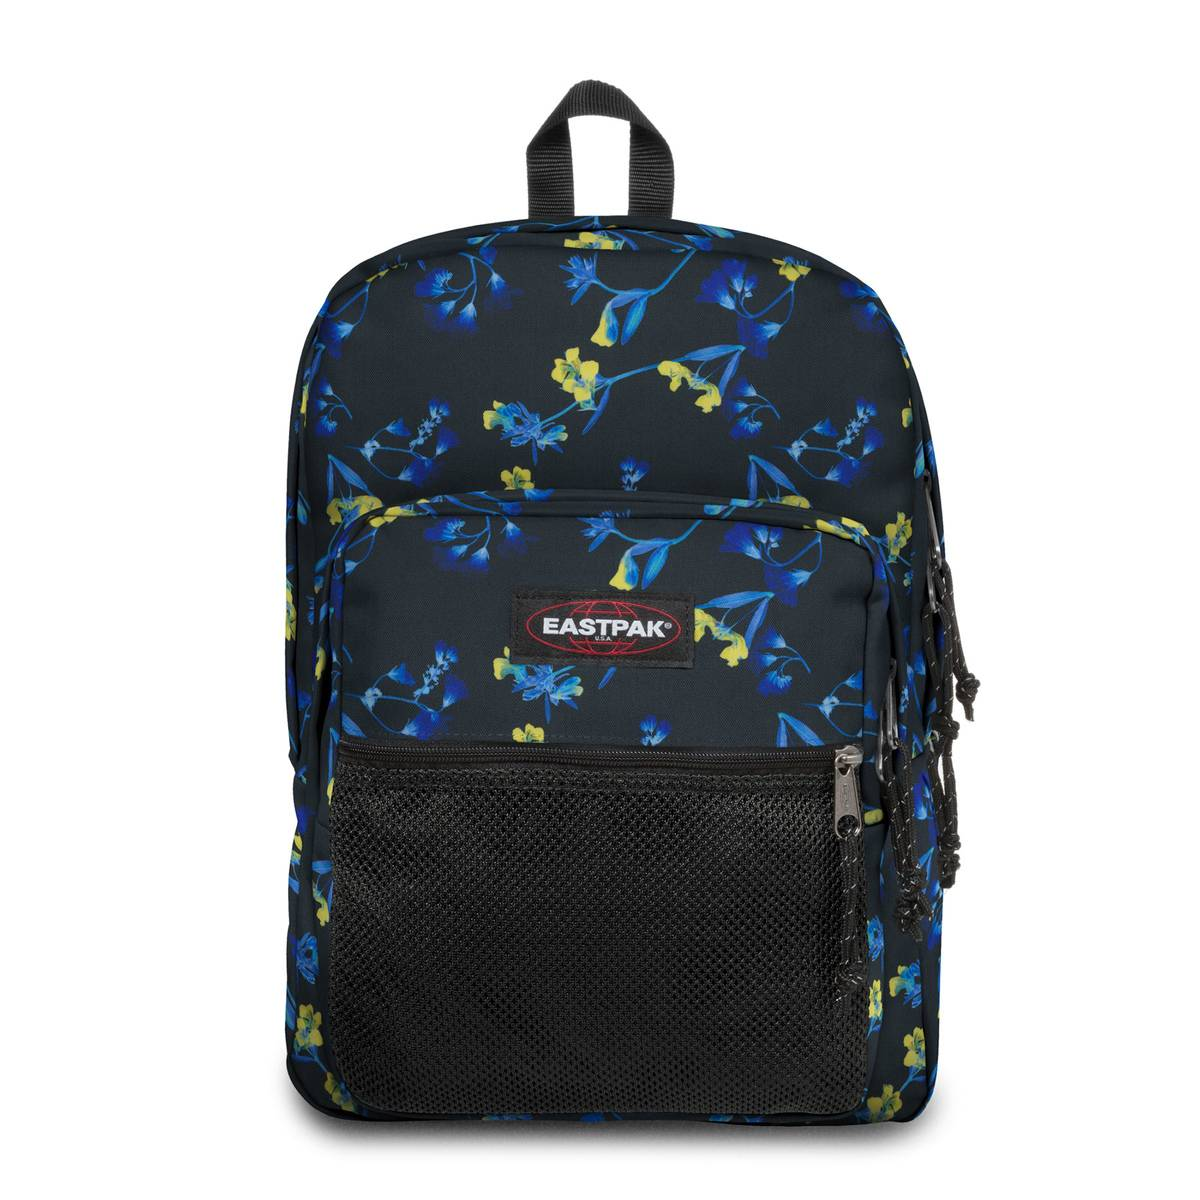 Eastpak Zaino Pinnacle Glow Black